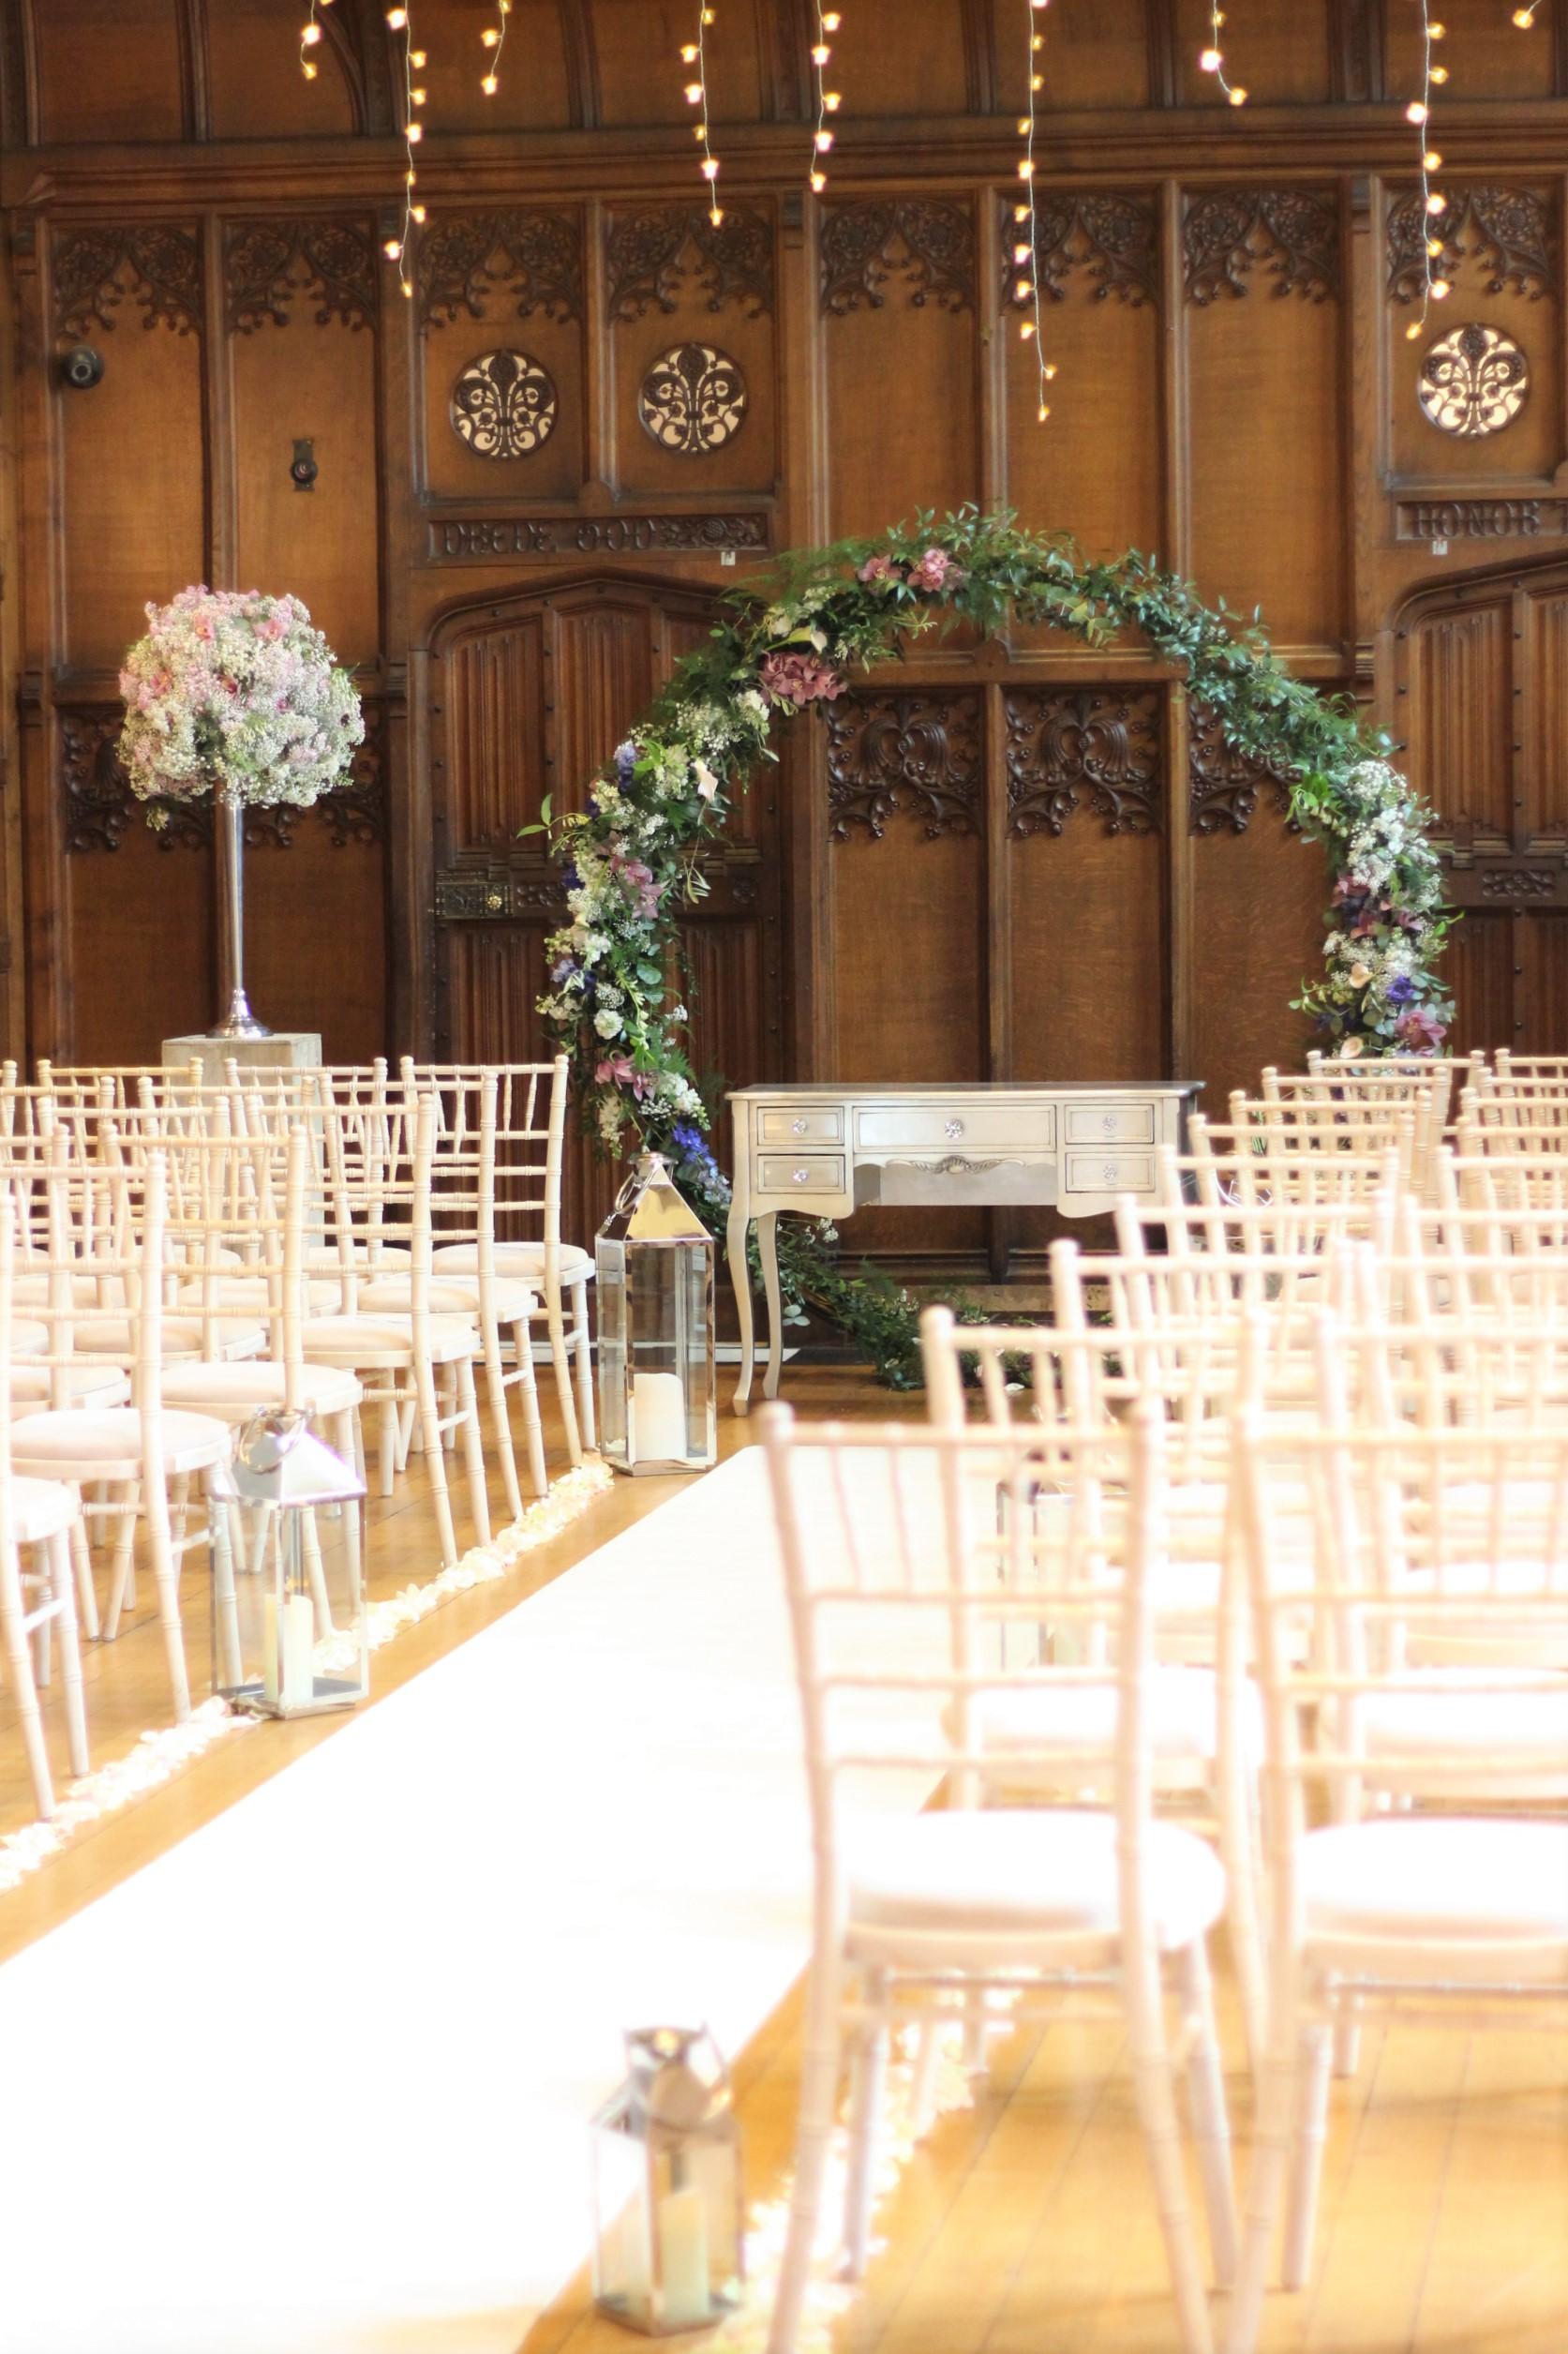 The ceremony room at Hengrave Hall